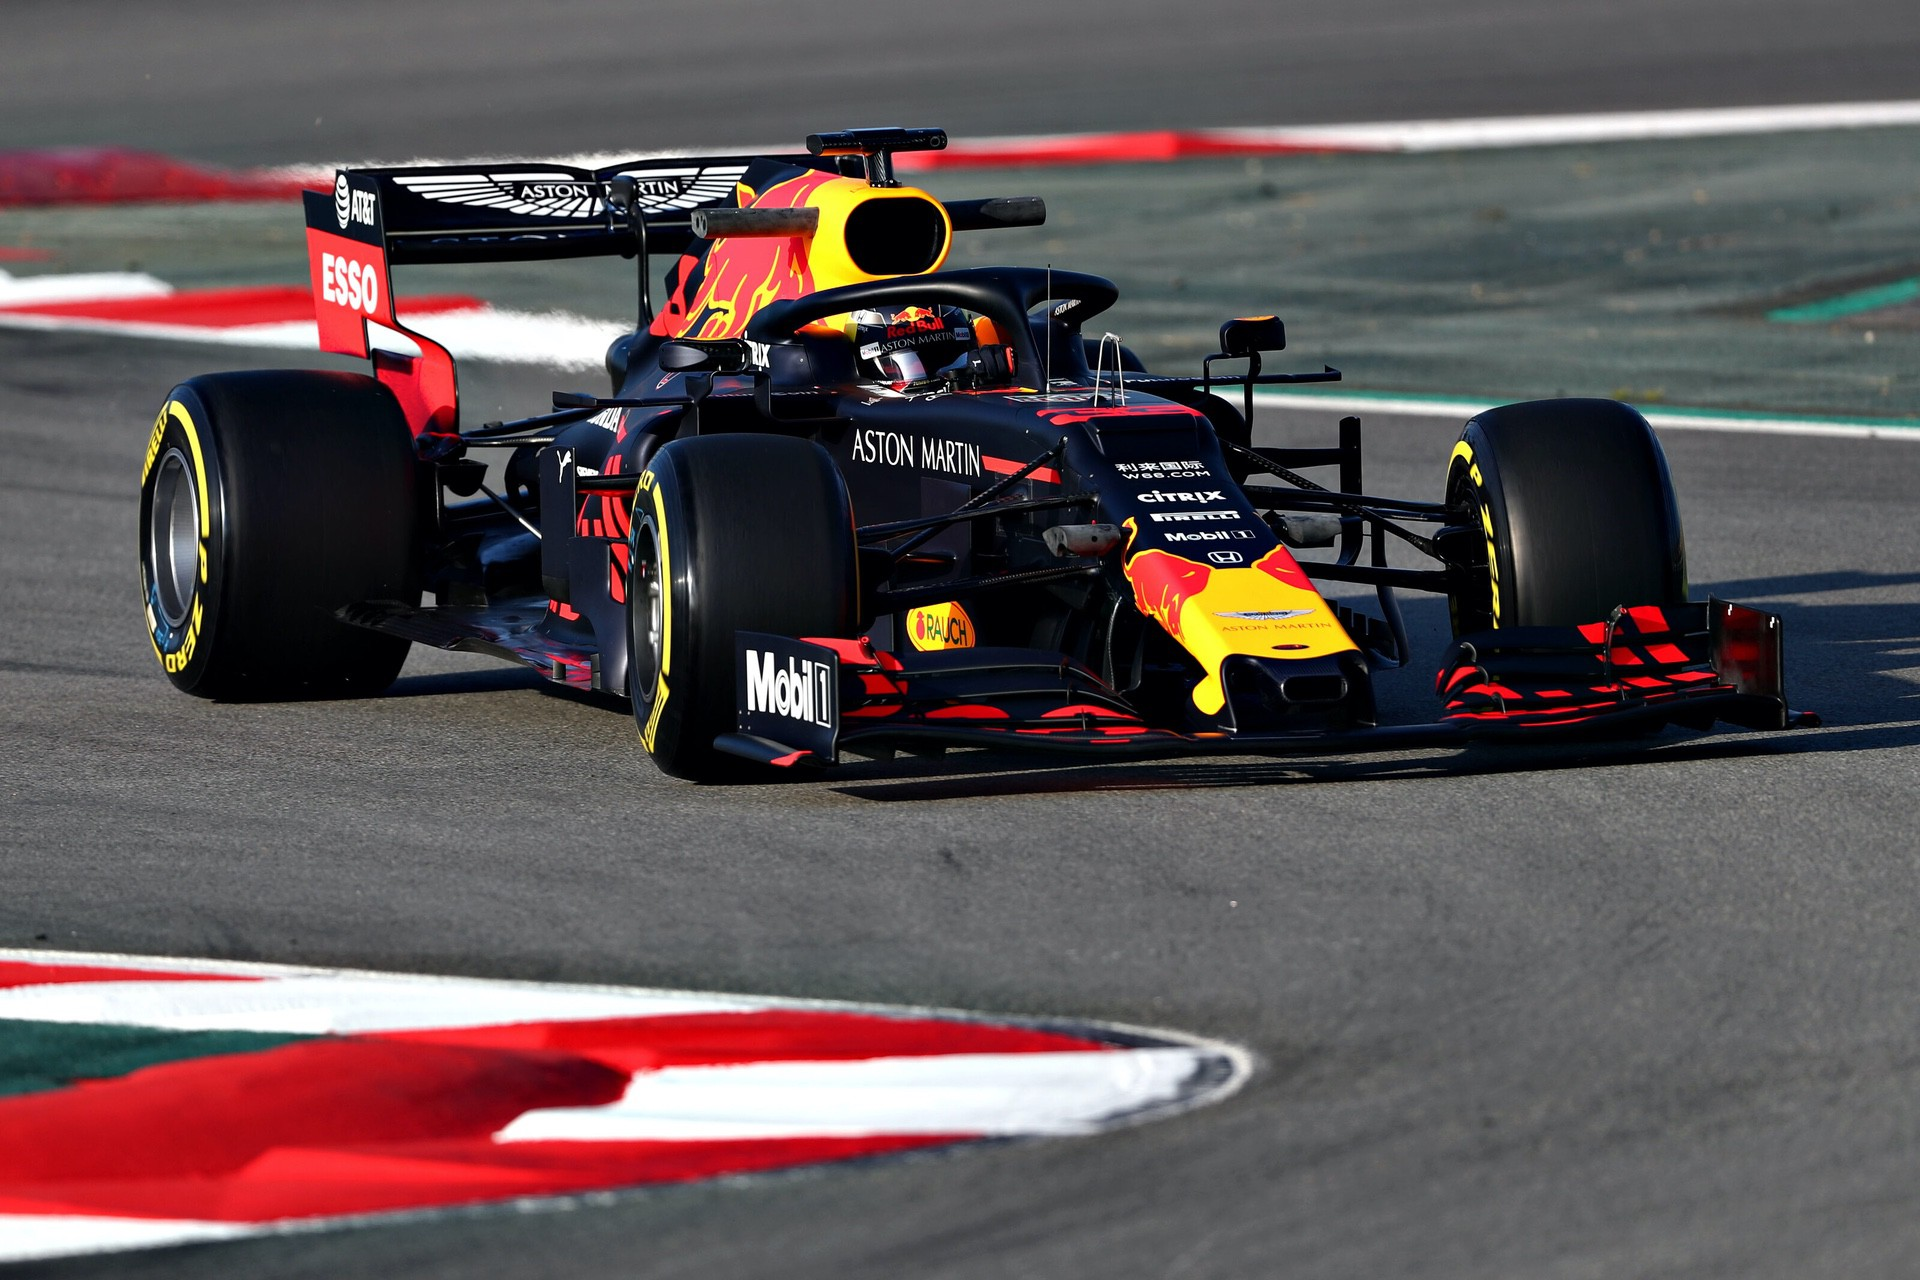 MONTMELO, SPAIN - FEBRUARY 18: Max Verstappen of the Netherlands driving the (33) Aston Martin Red Bull Racing RB15 on track during day one of F1 Winter Testing at Circuit de Catalunya on February 18, 2019 in Montmelo, Spain. (Photo by Dan Istitene/Getty Images) // Getty Images / Red Bull Content Pool  // AP-1YFQGD91N1W12 // Usage for editorial use only // Please go to www.redbullcontentpool.com for further information. //